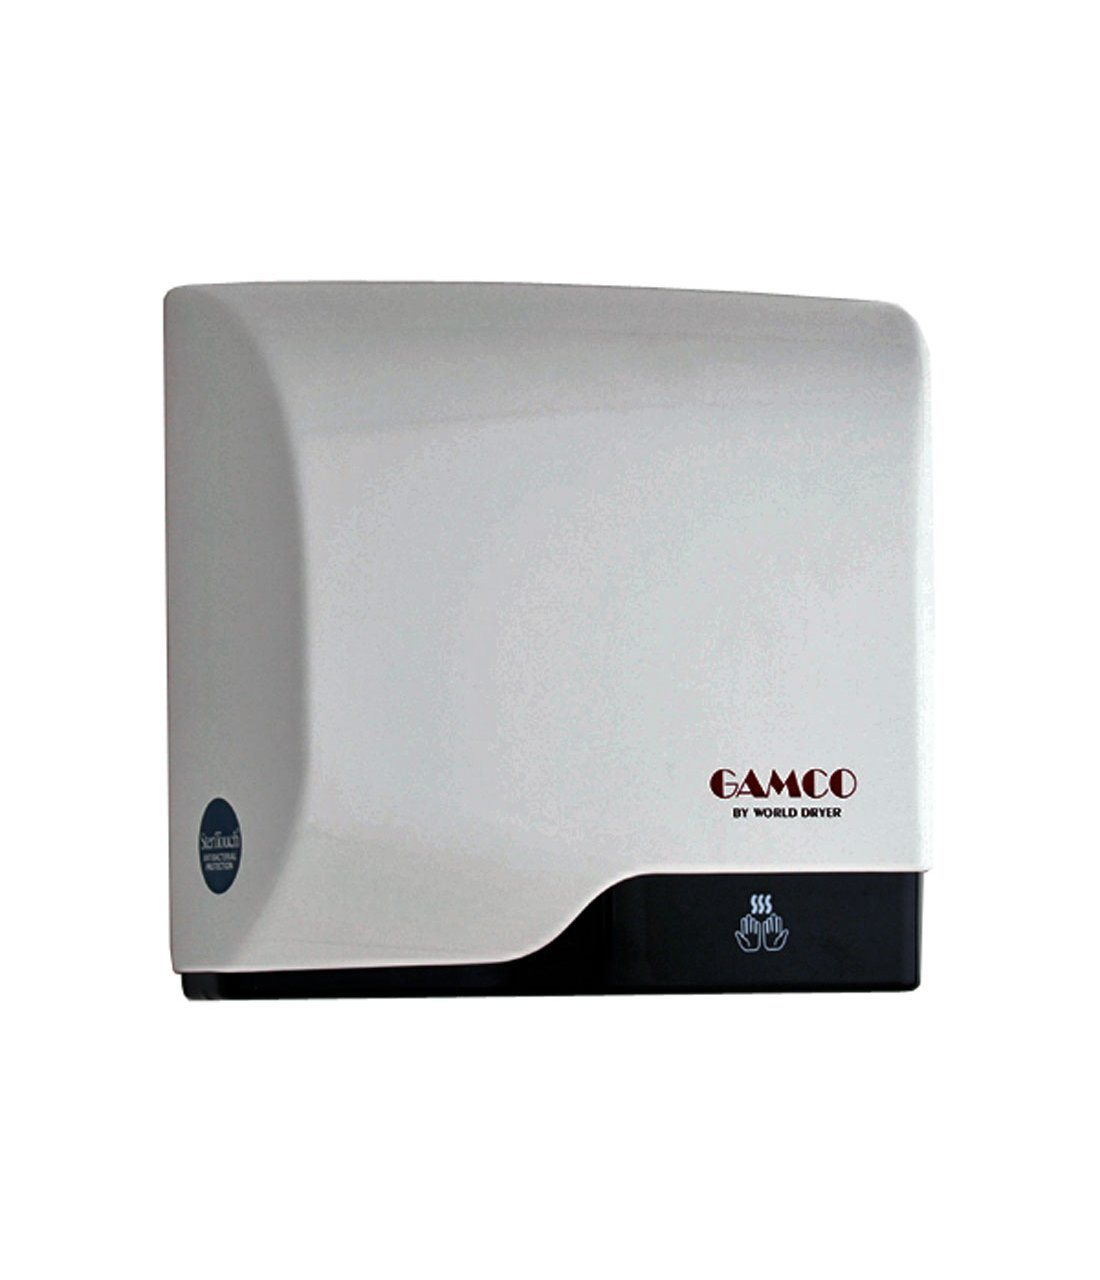 Gamco DR 5120 Surface Mounted Hand Dryer   White Epoxy Cover